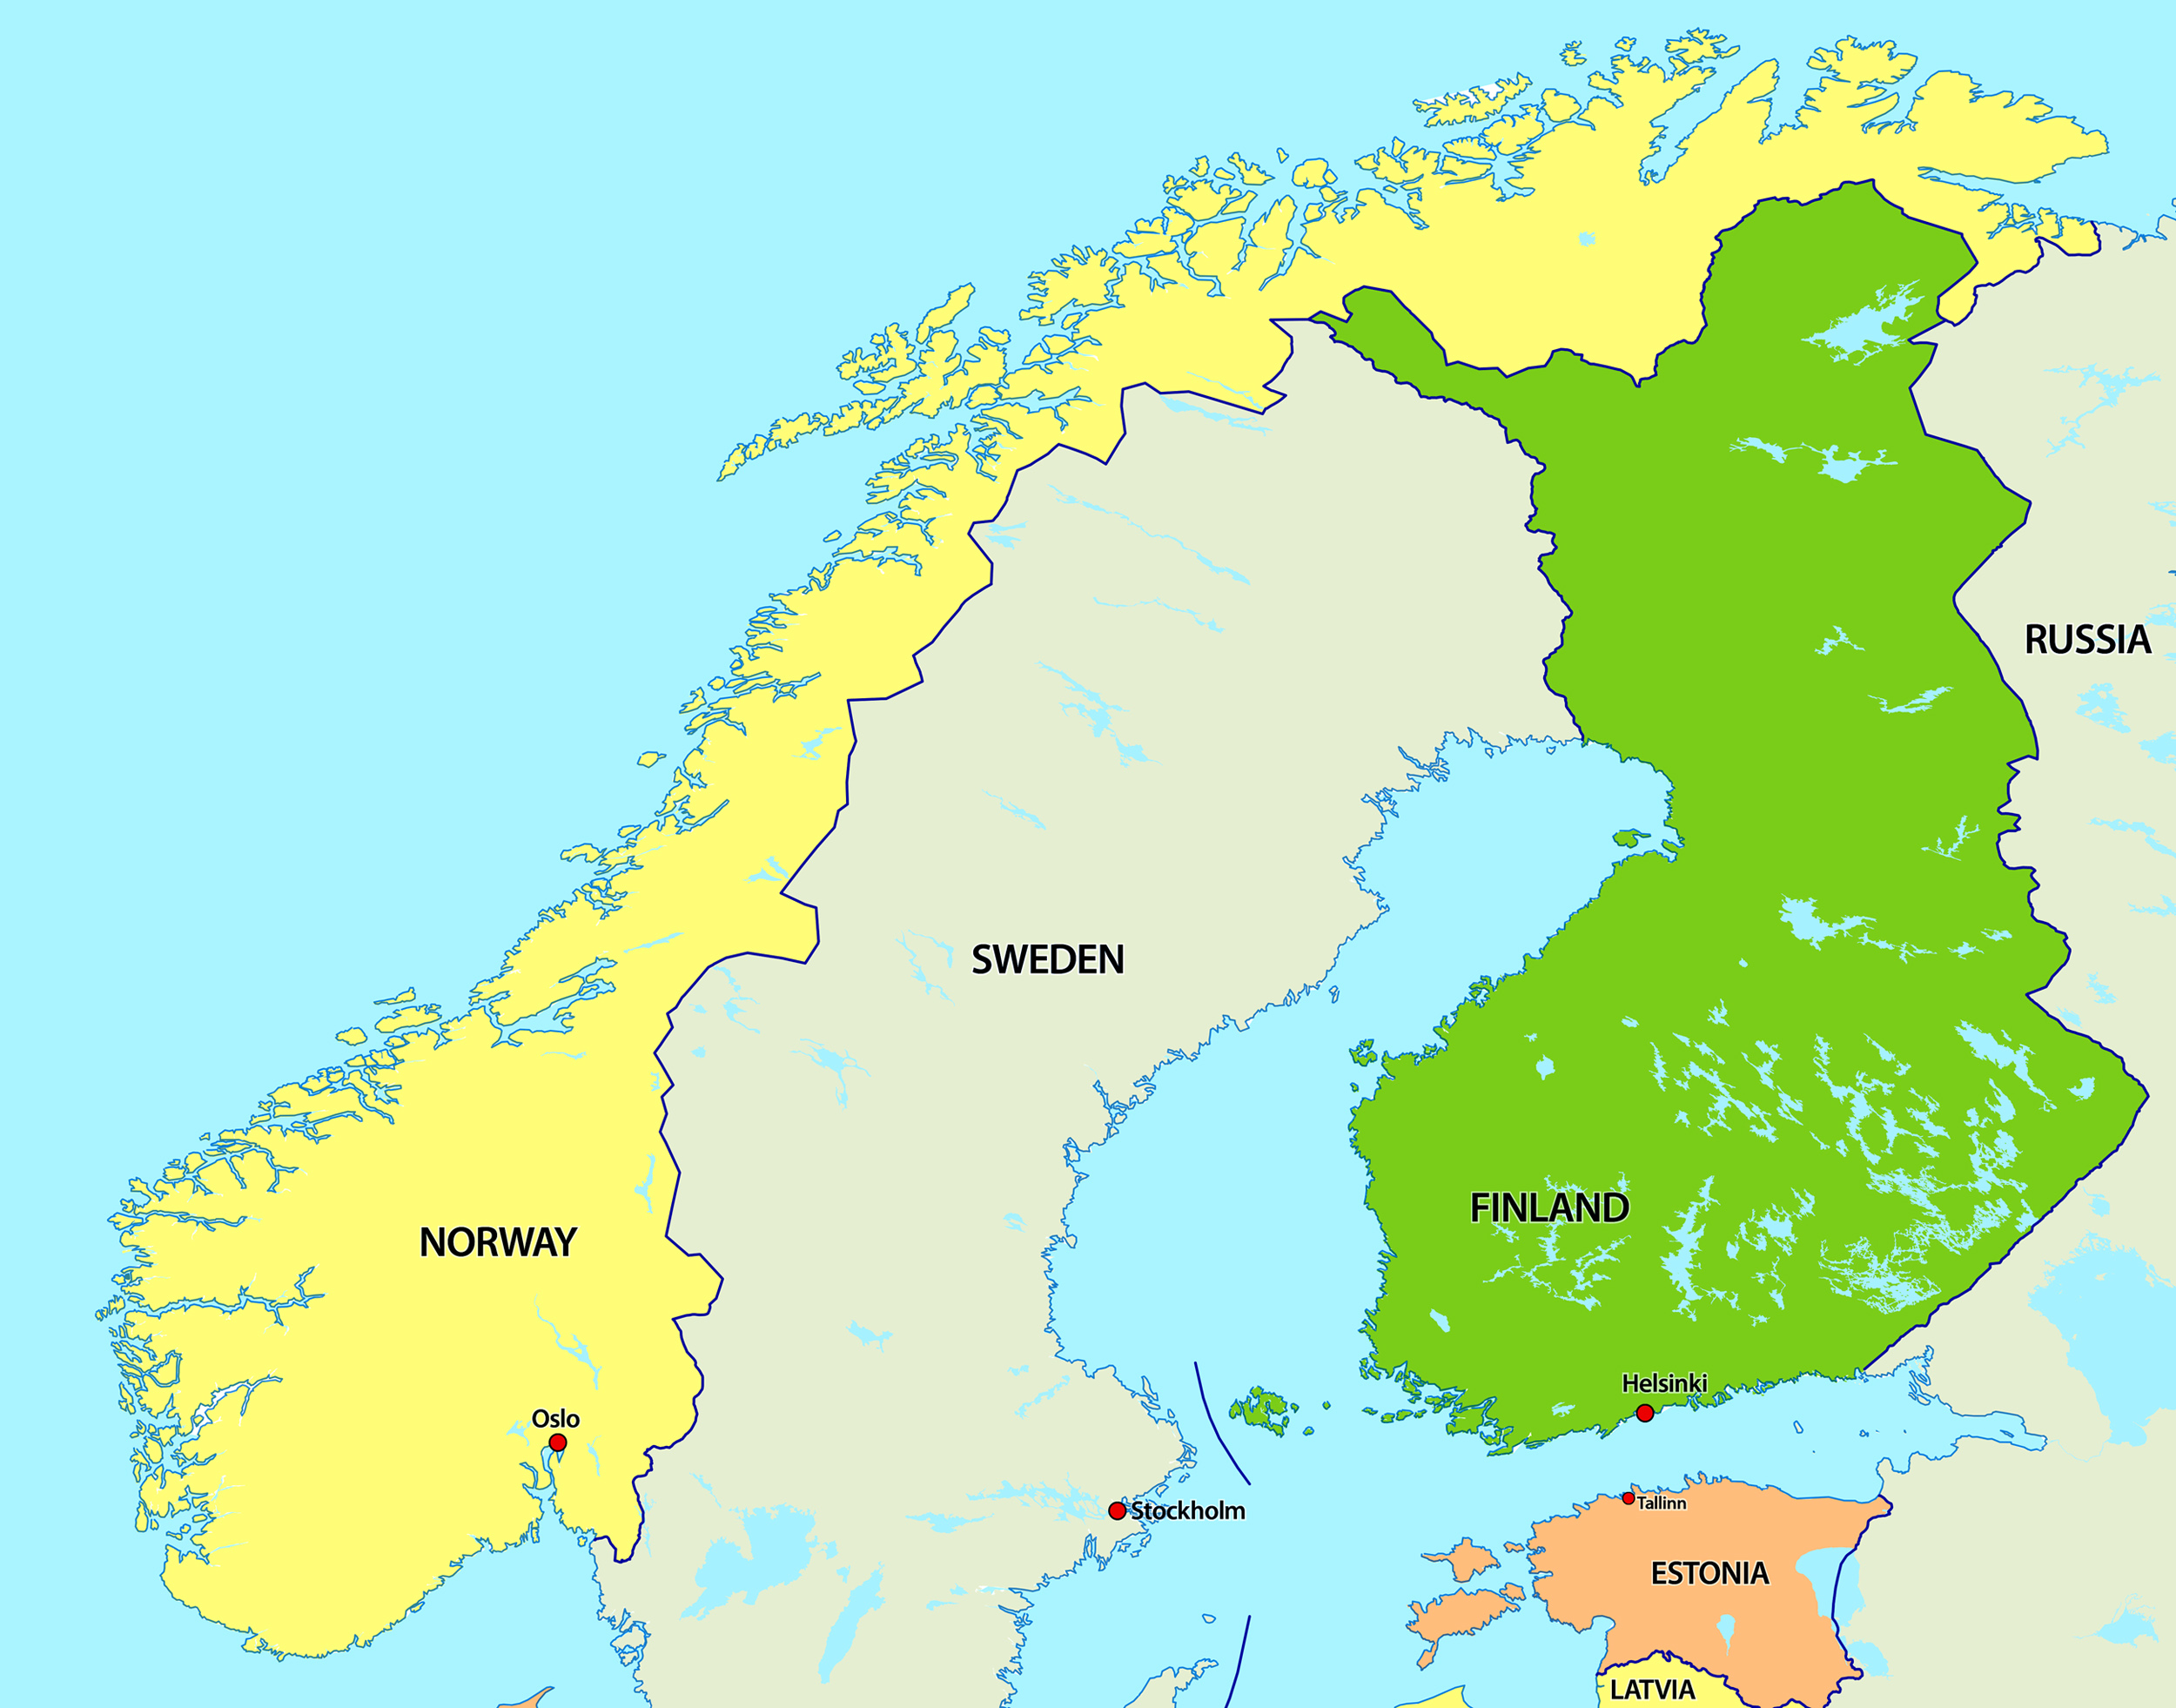 Maps Update 12001142 Europe Map Cities and Countries Political – Map of Northern Europe with Capitals